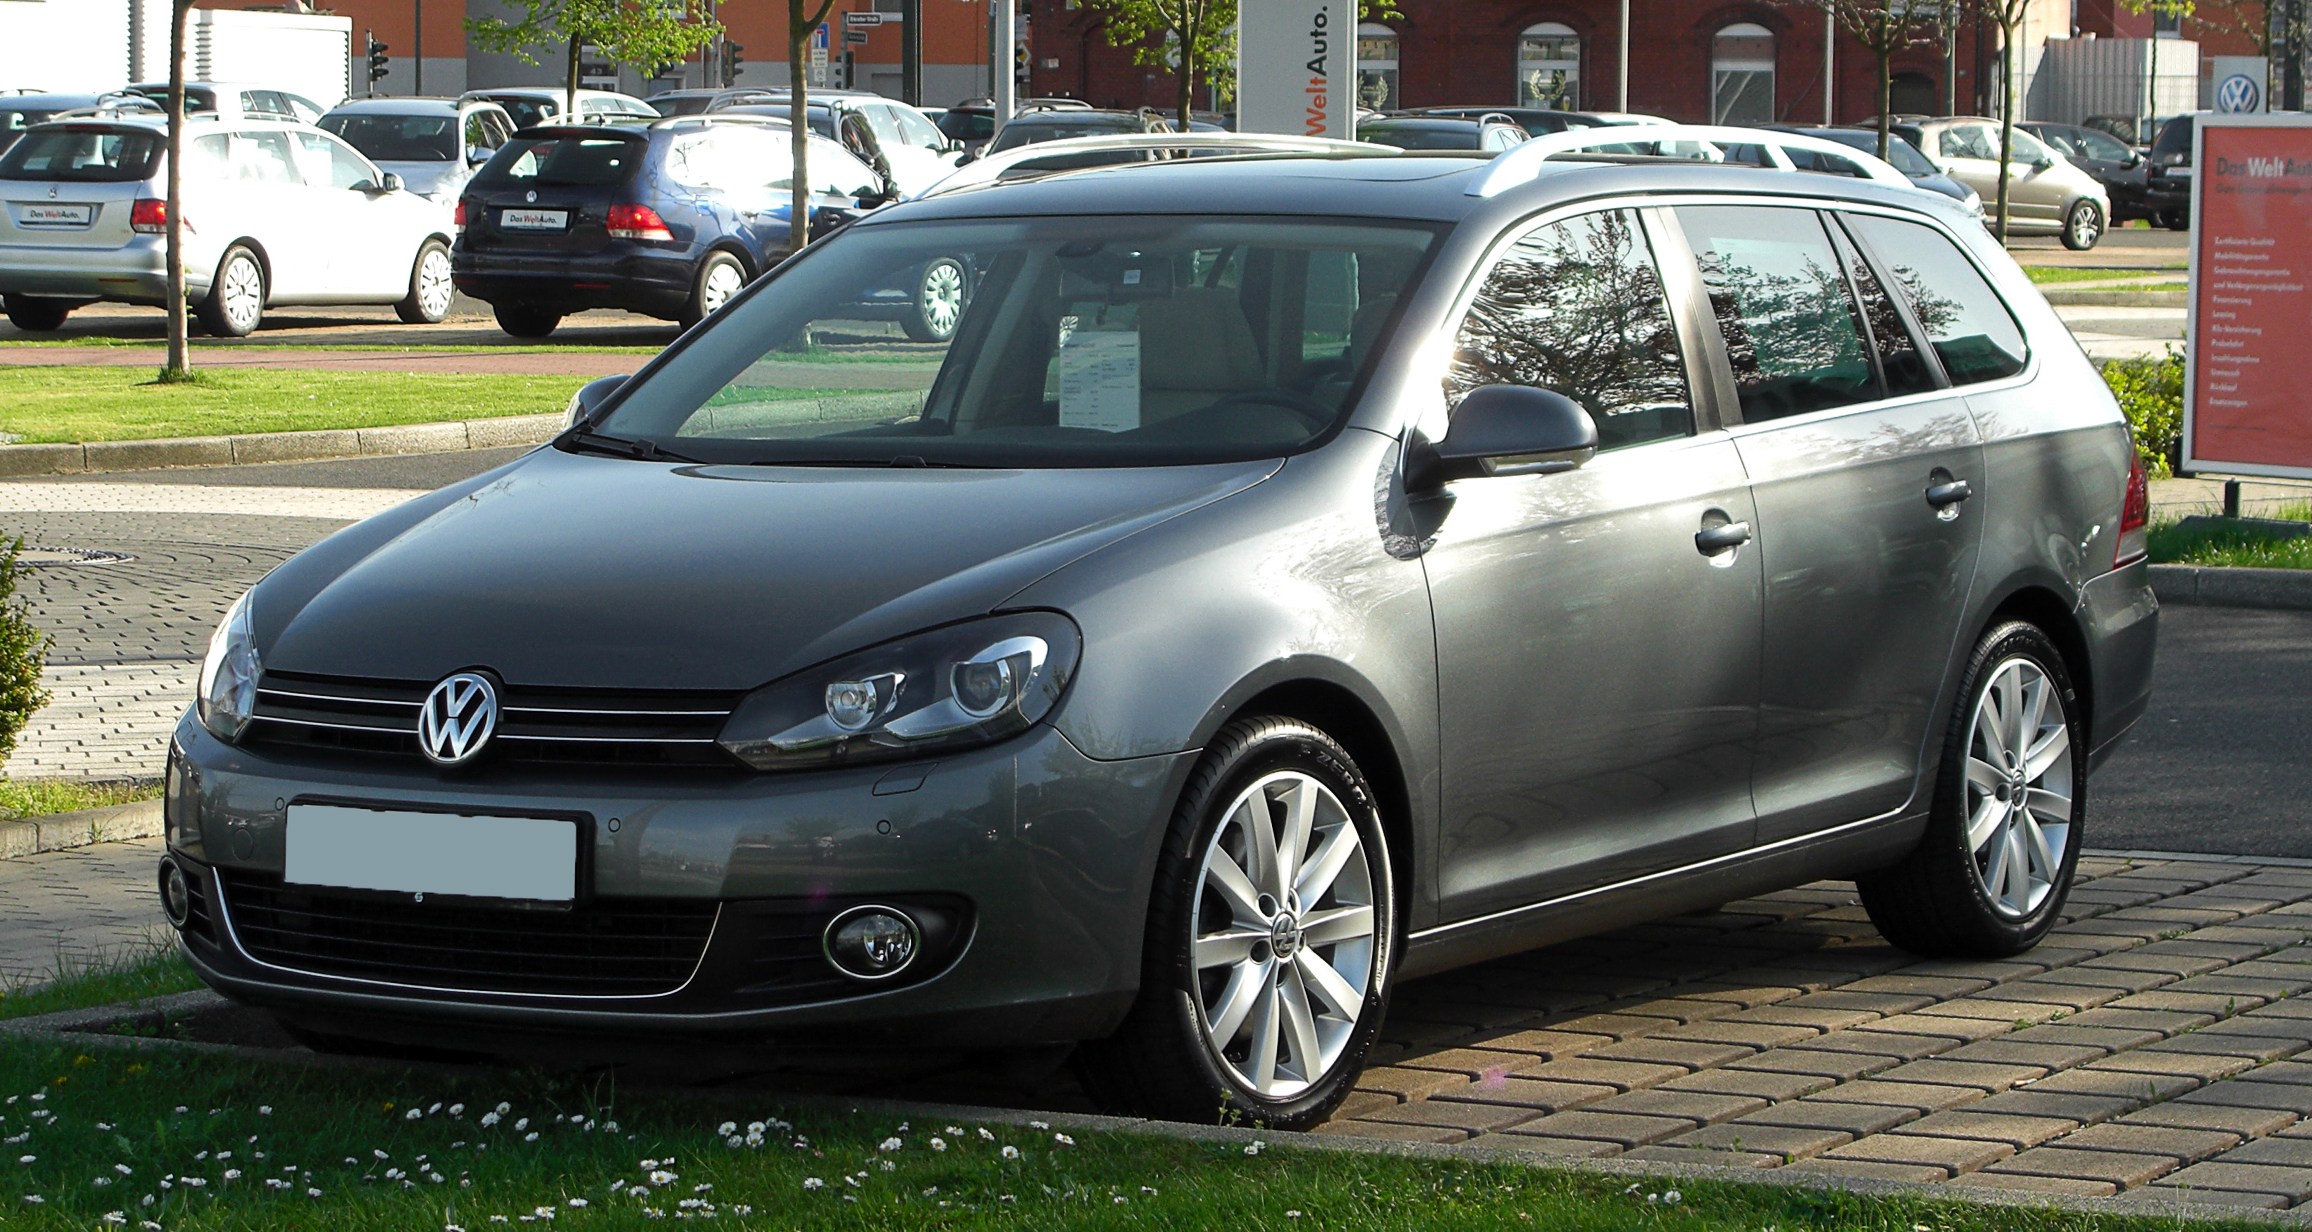 file vw golf variant 2 0 tdi highline vi frontansicht 9 april 2011 d. Black Bedroom Furniture Sets. Home Design Ideas